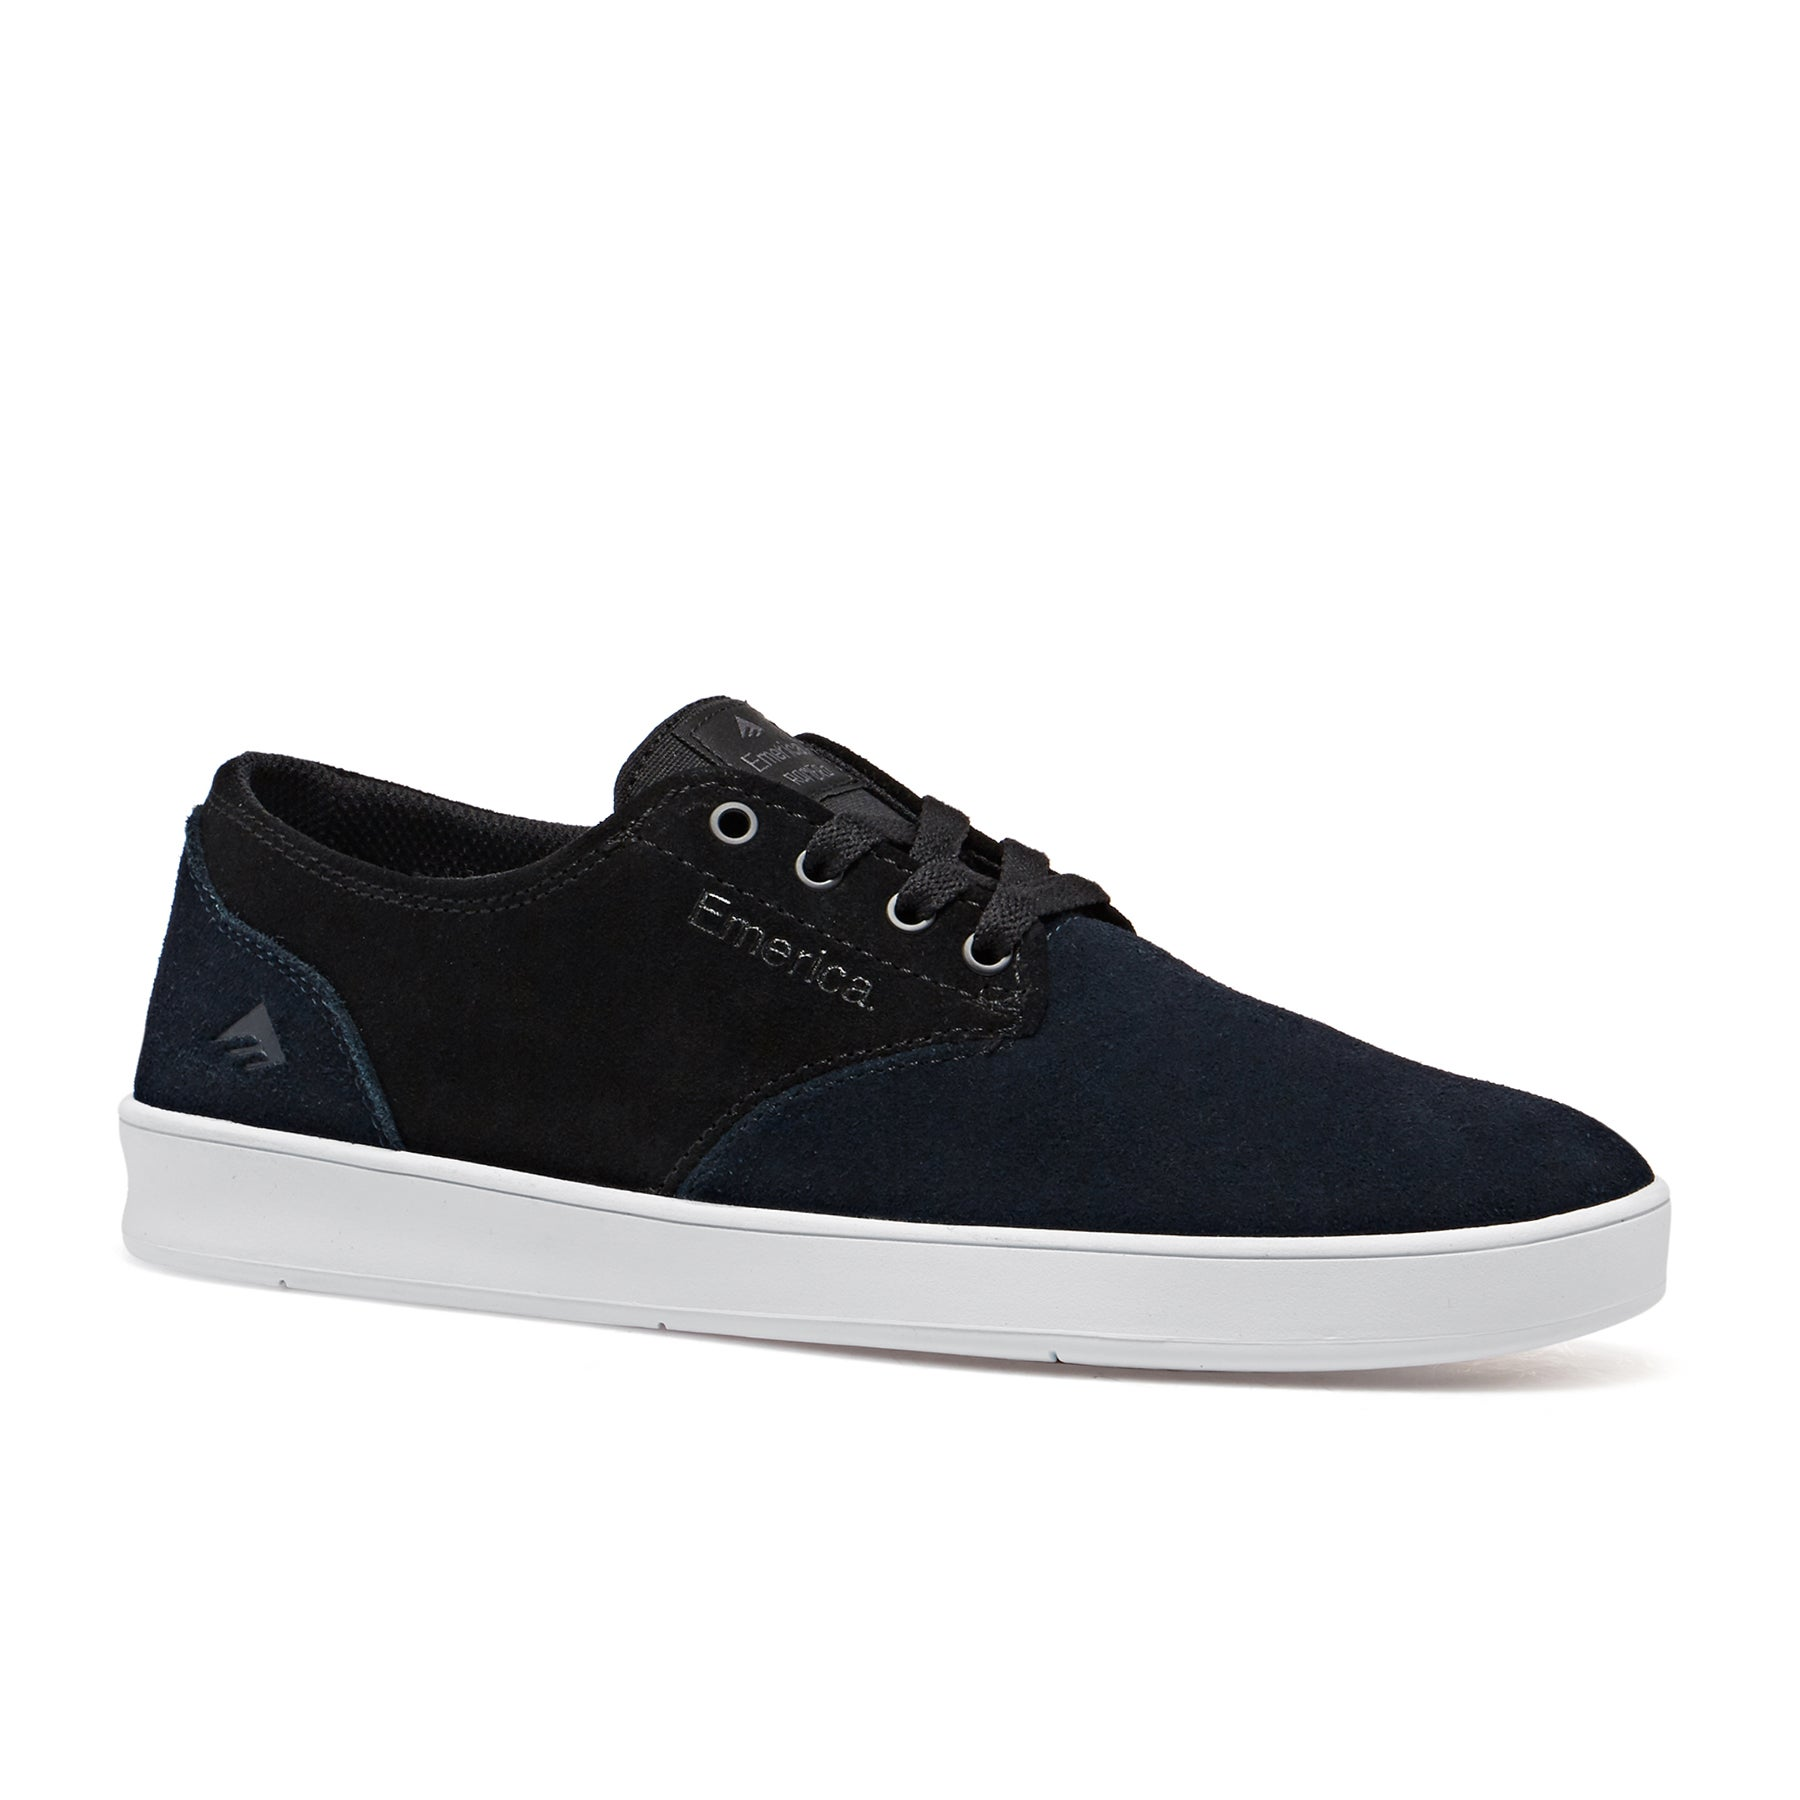 Emerica The Romero Laced Shoes - Navy Black Silver